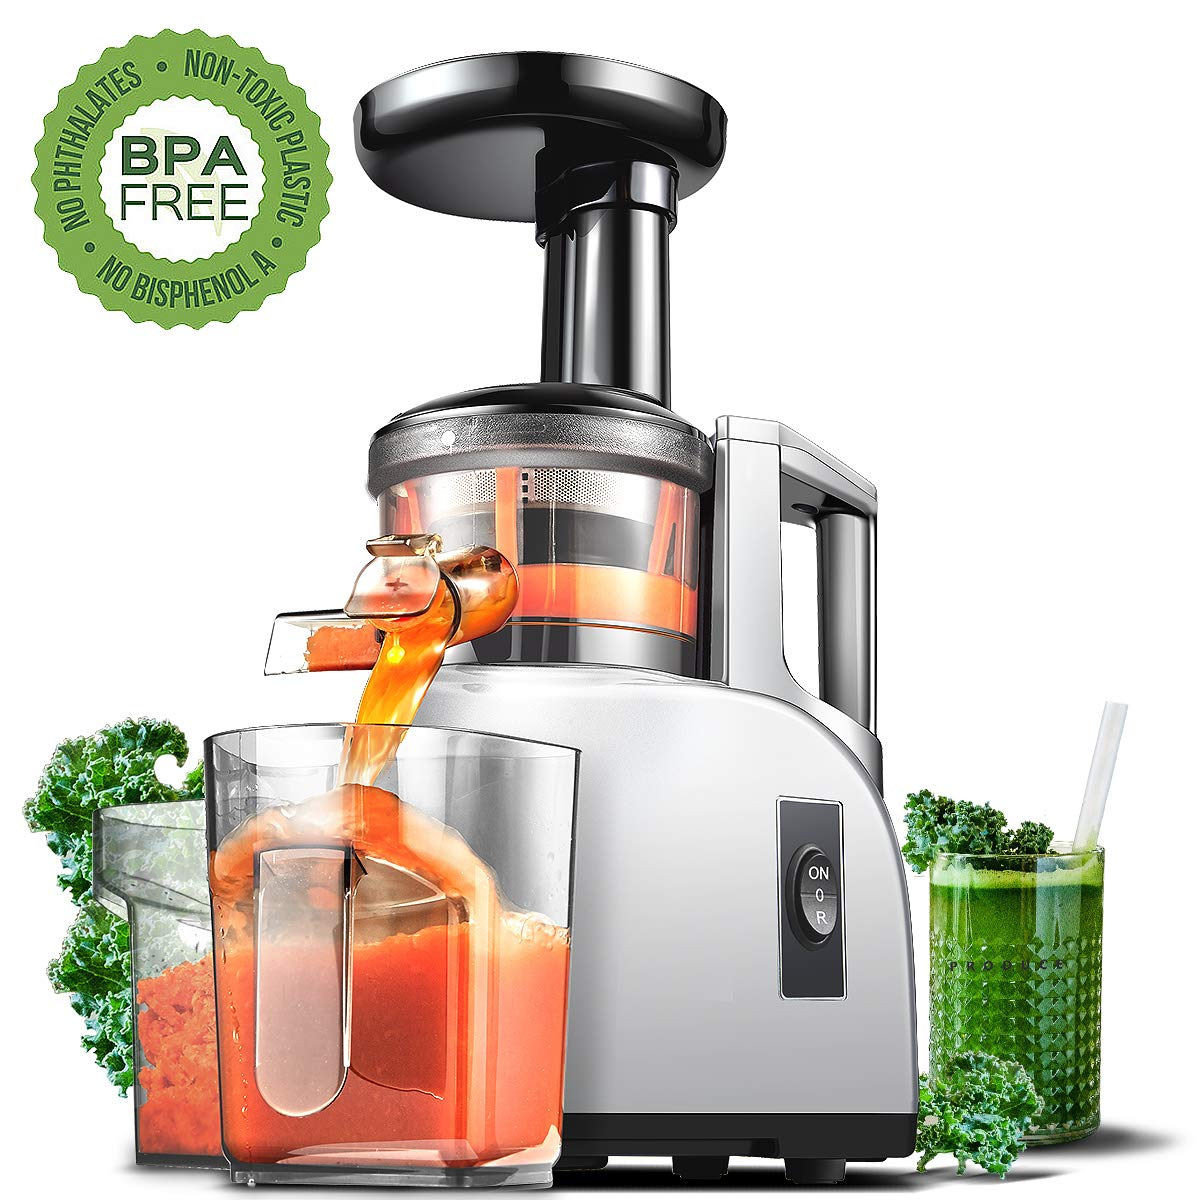 Slow Juicer AMZCHEF Slow Masticating Juicer Extractor Slow Cold Press Juicer Machine Quiet Motor Reverse Function Portable Handle Brush Vegetable Fruit Juice Jugs BPA Free 55RPM